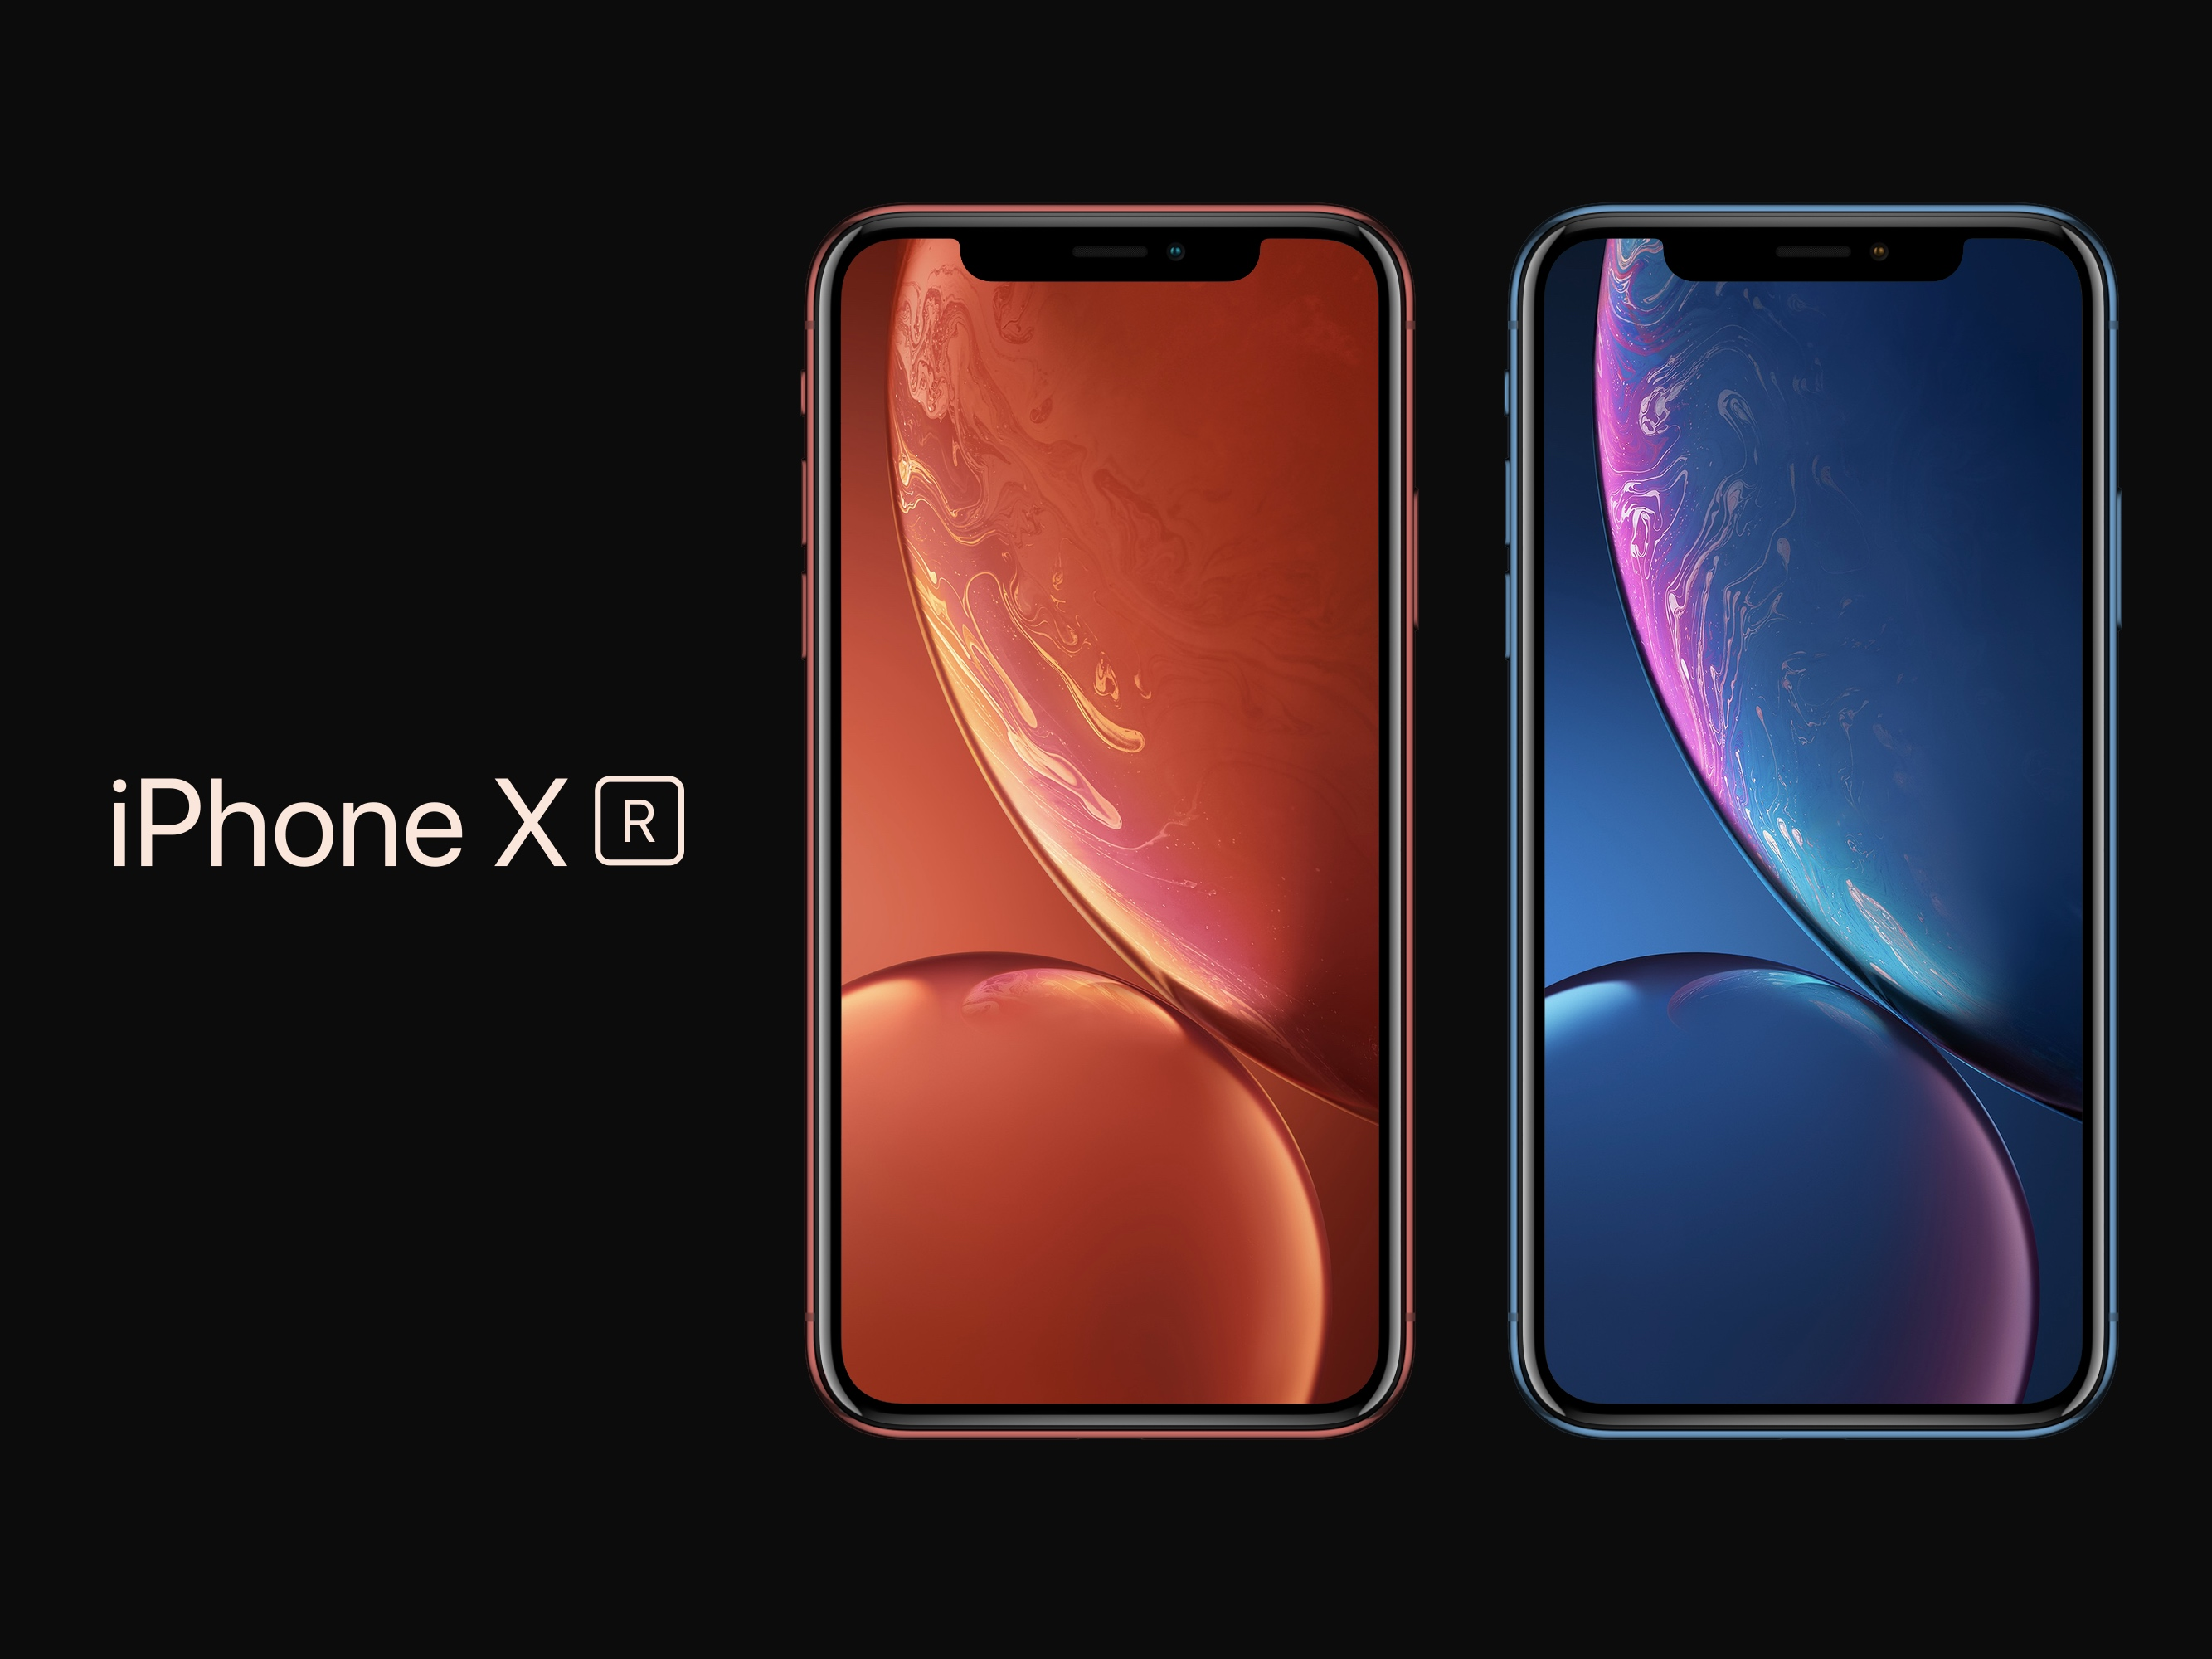 Wallpapers iPhone Xs iPhone Xs Max and iPhone Xr 2667x2000